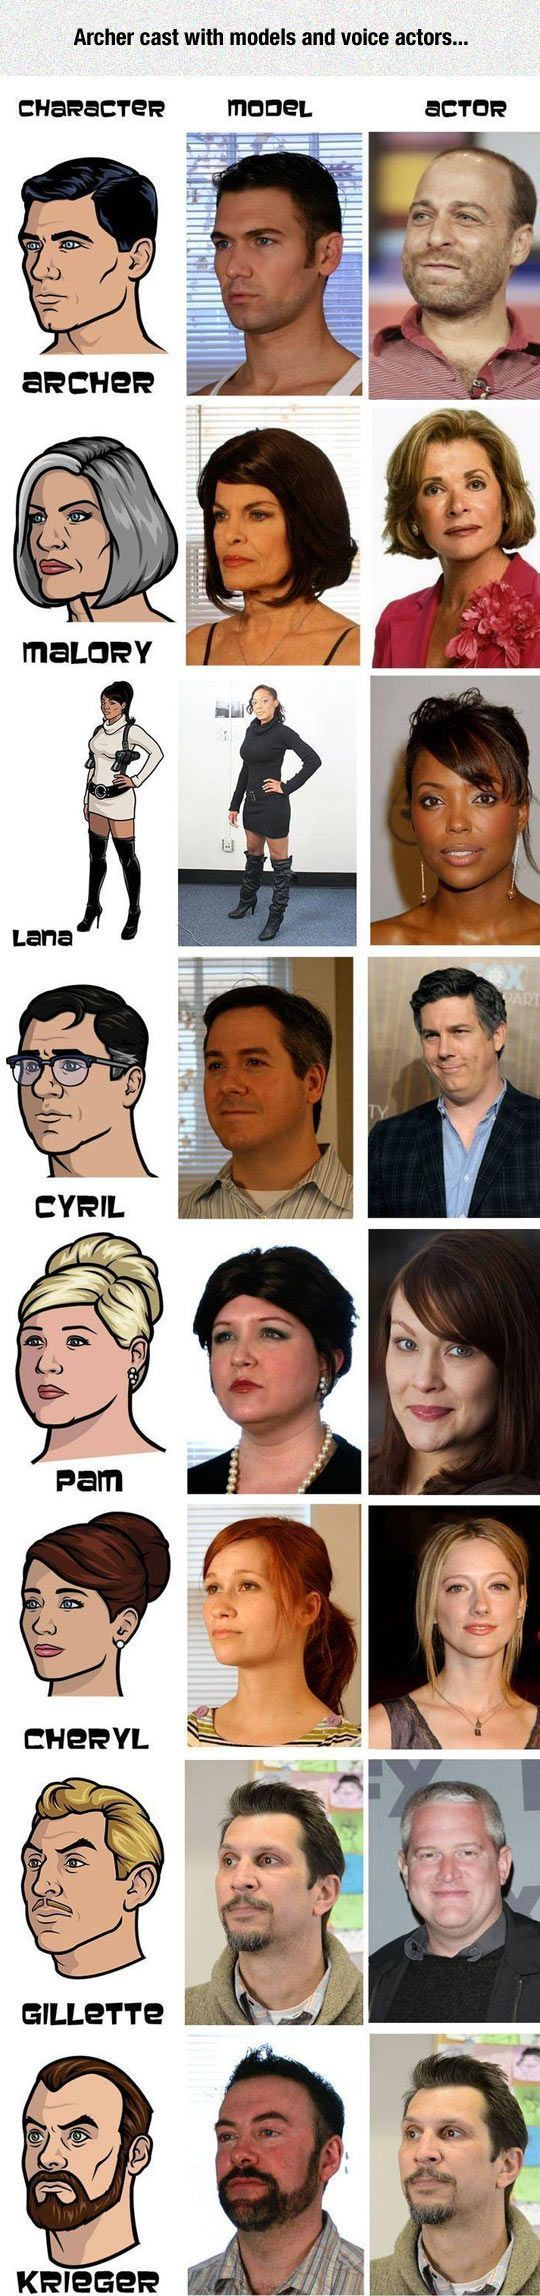 Archer Cast With Models And Voice Actors tv cartoons actors tv shows funny shows archer